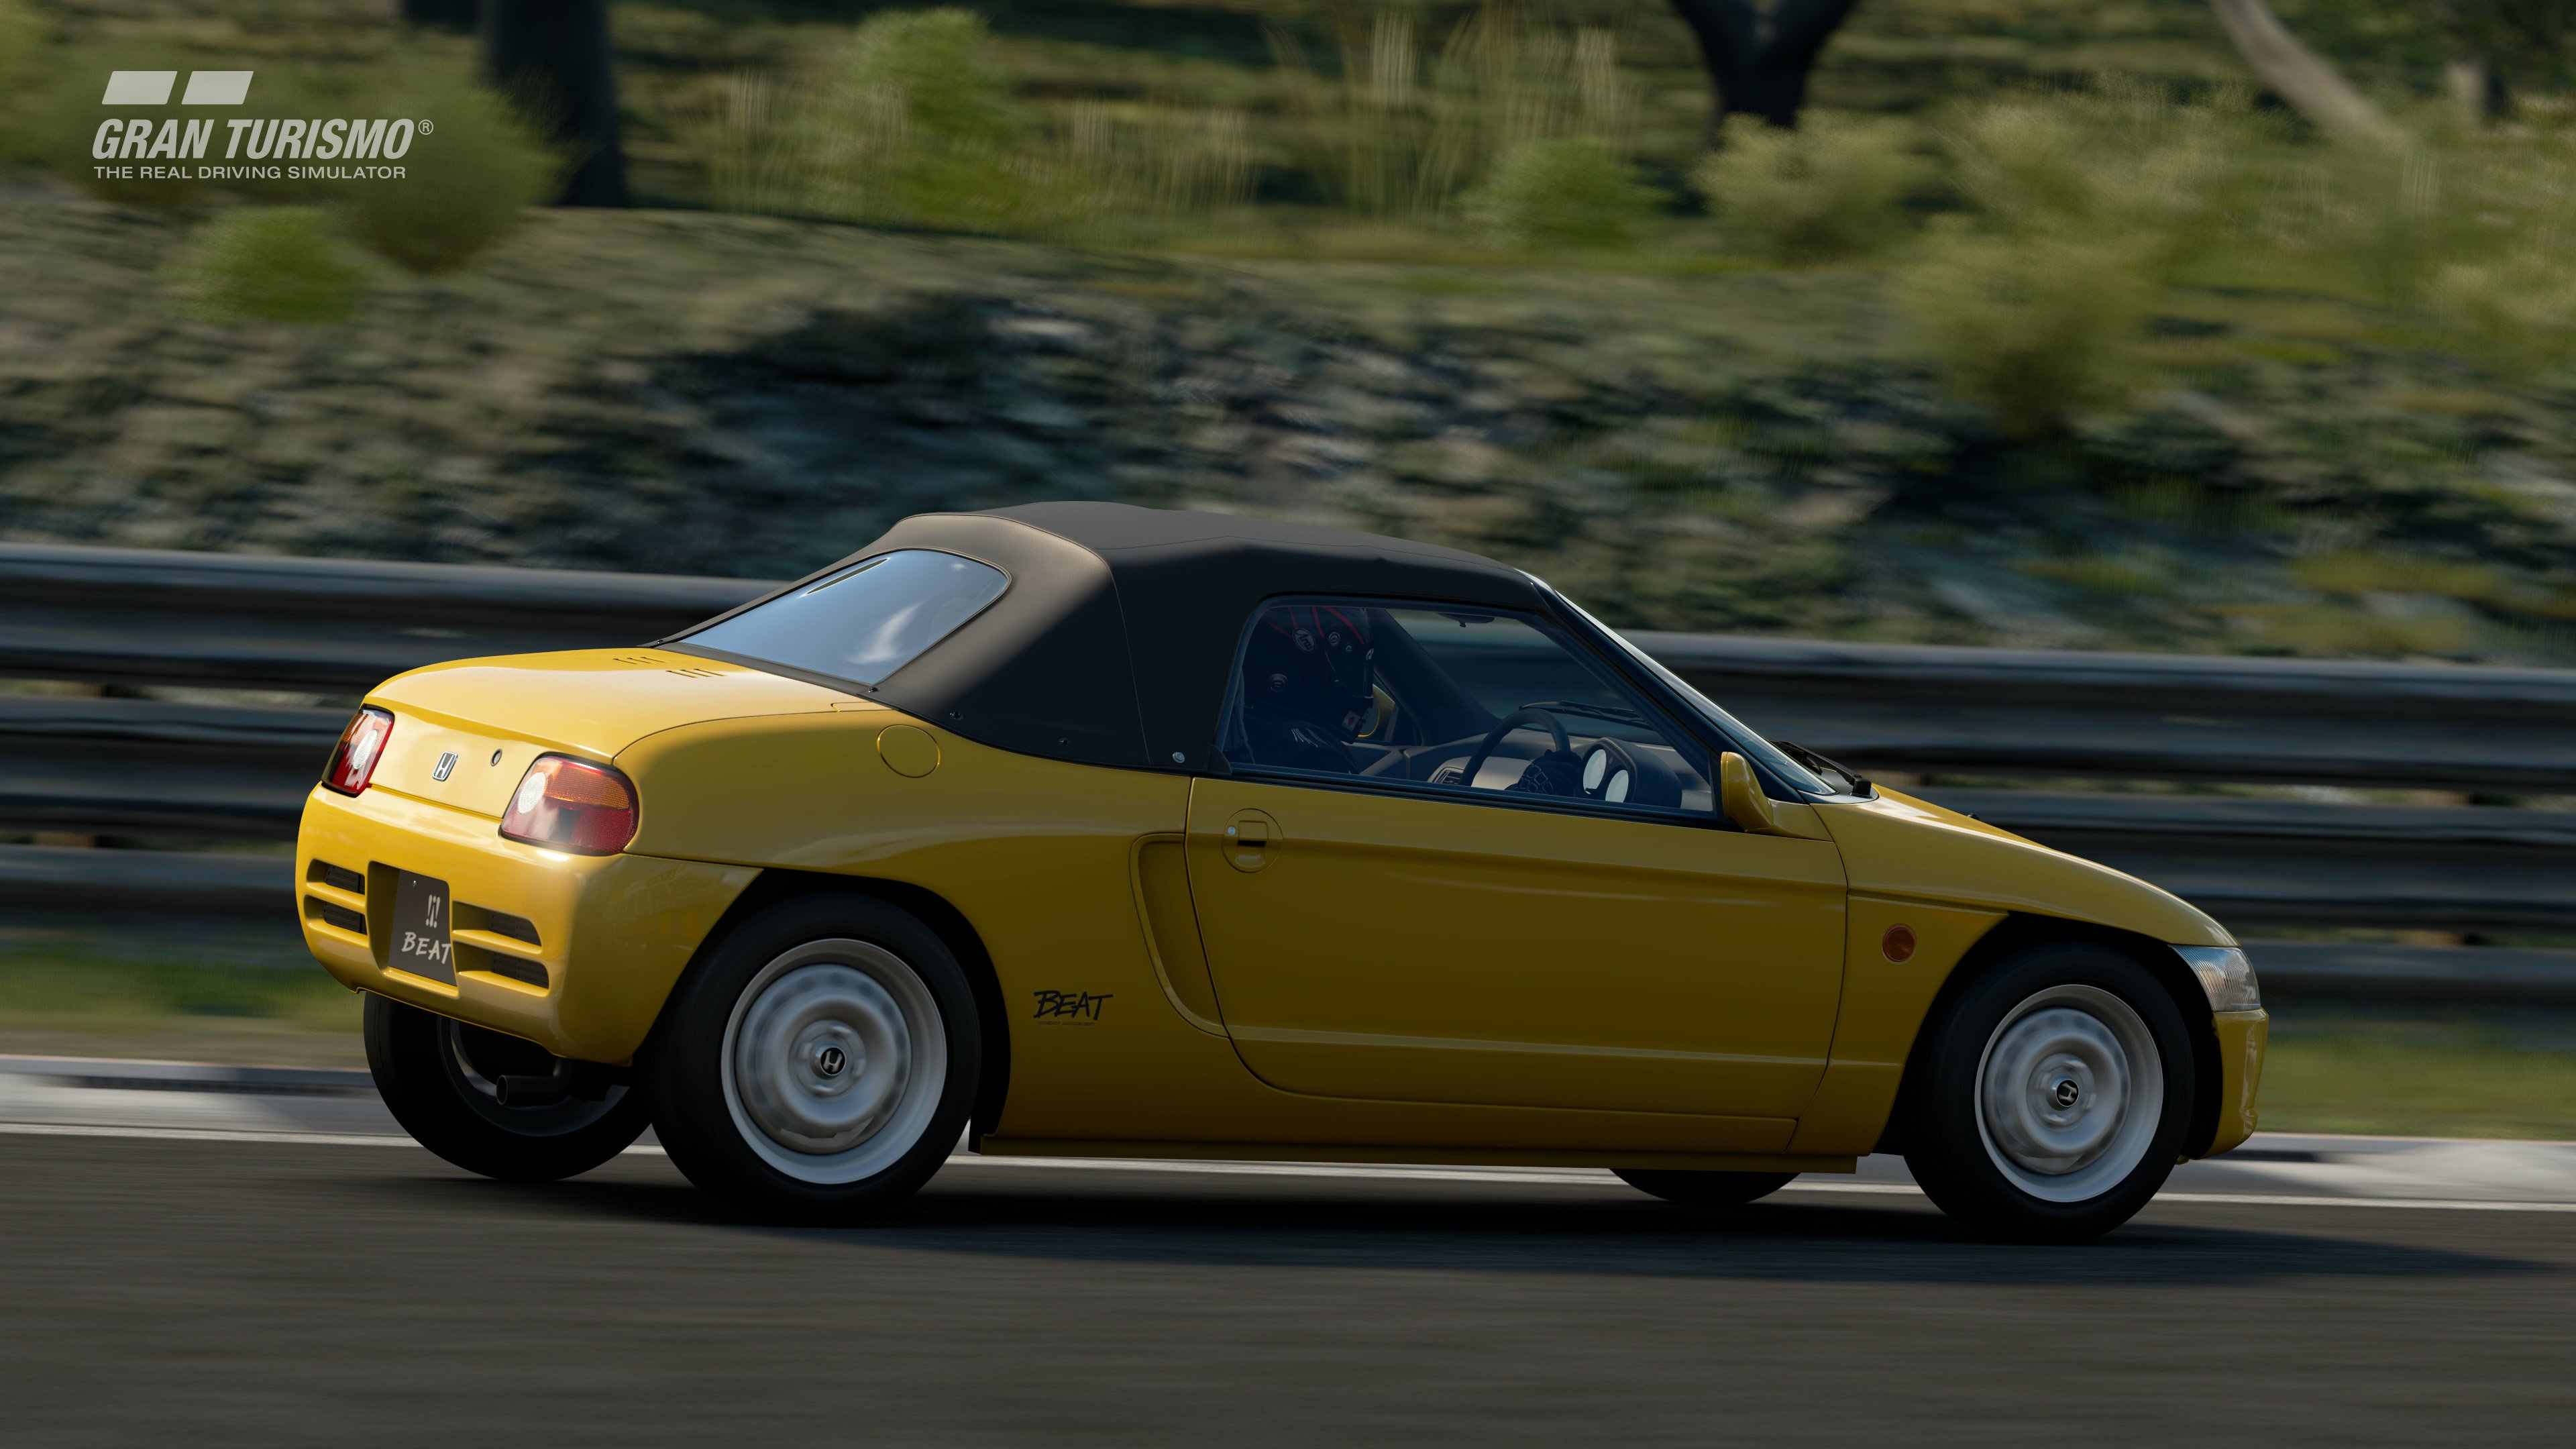 Gran Turismo Sport July update Honda Beat '91 (N100) 3